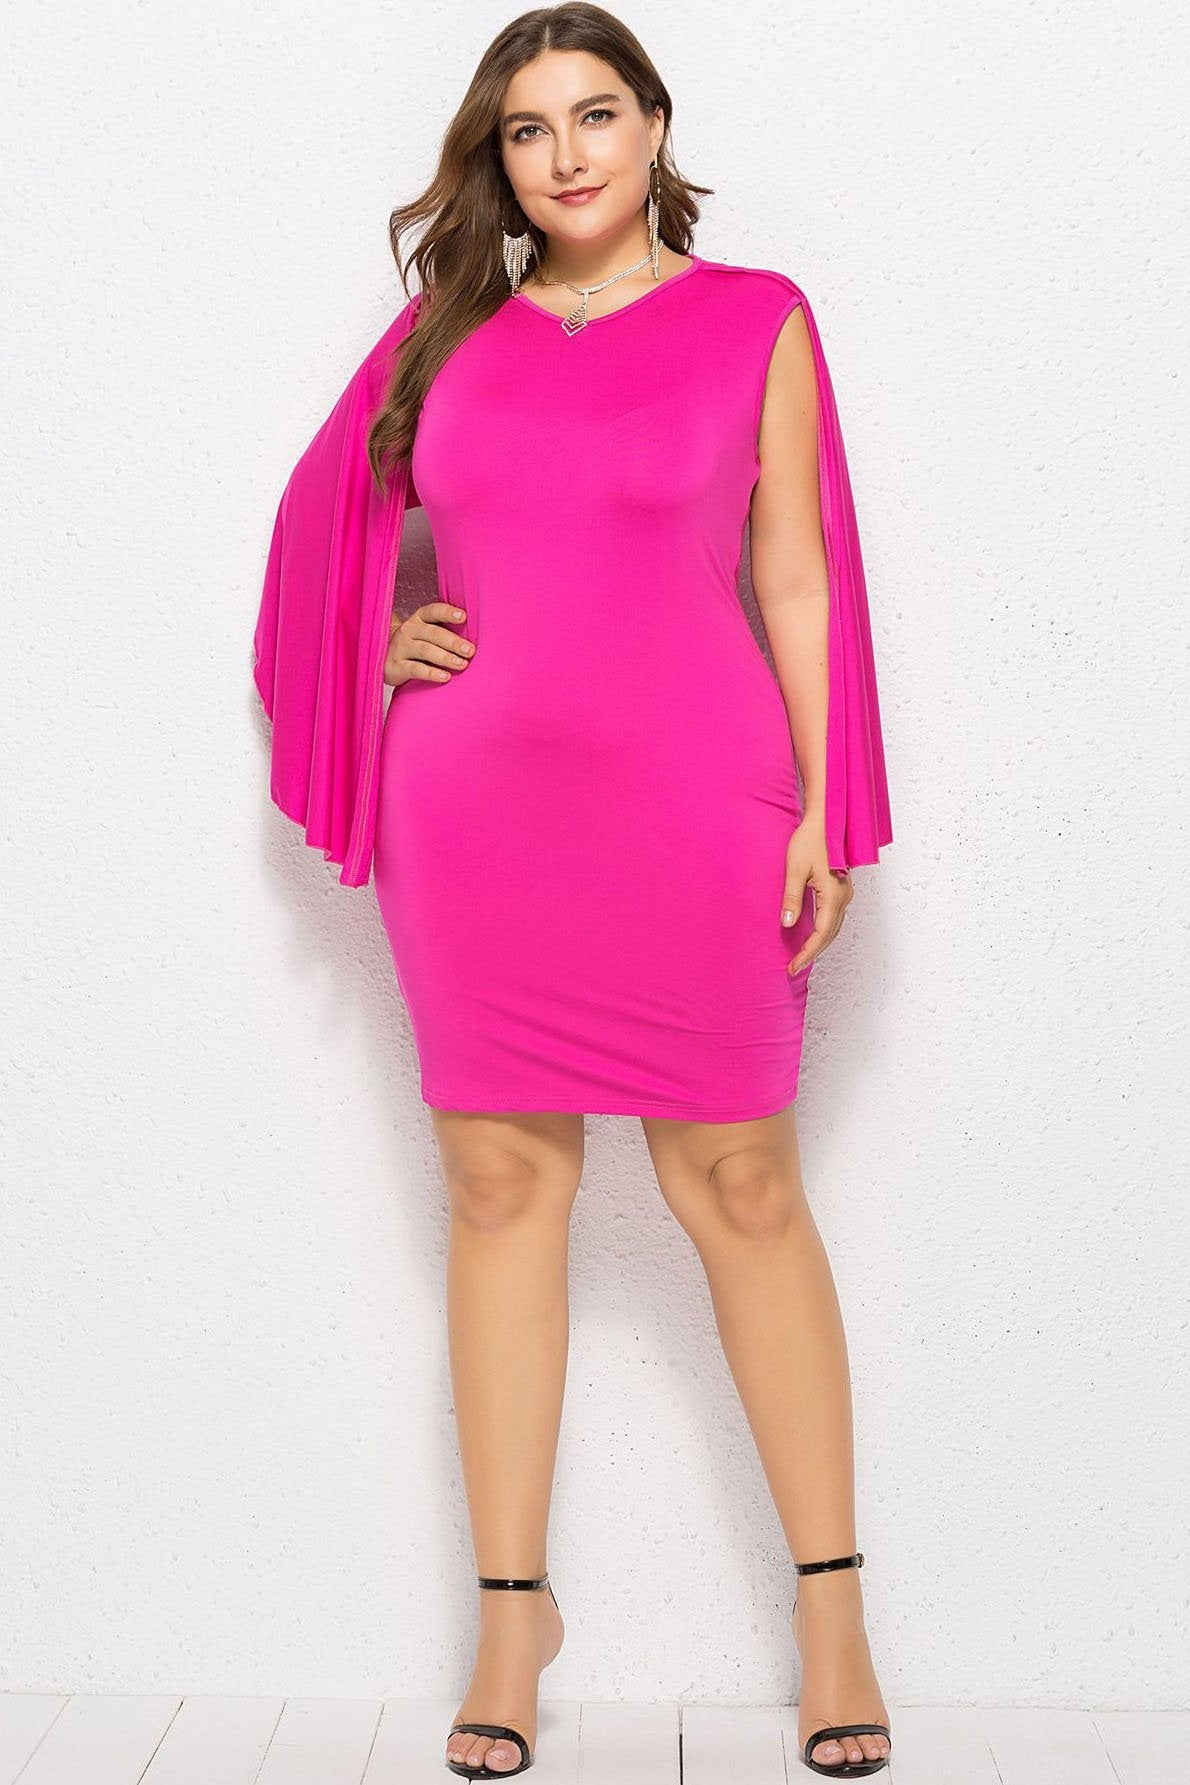 Vogue Slim Batwing Sleeve Party Dress